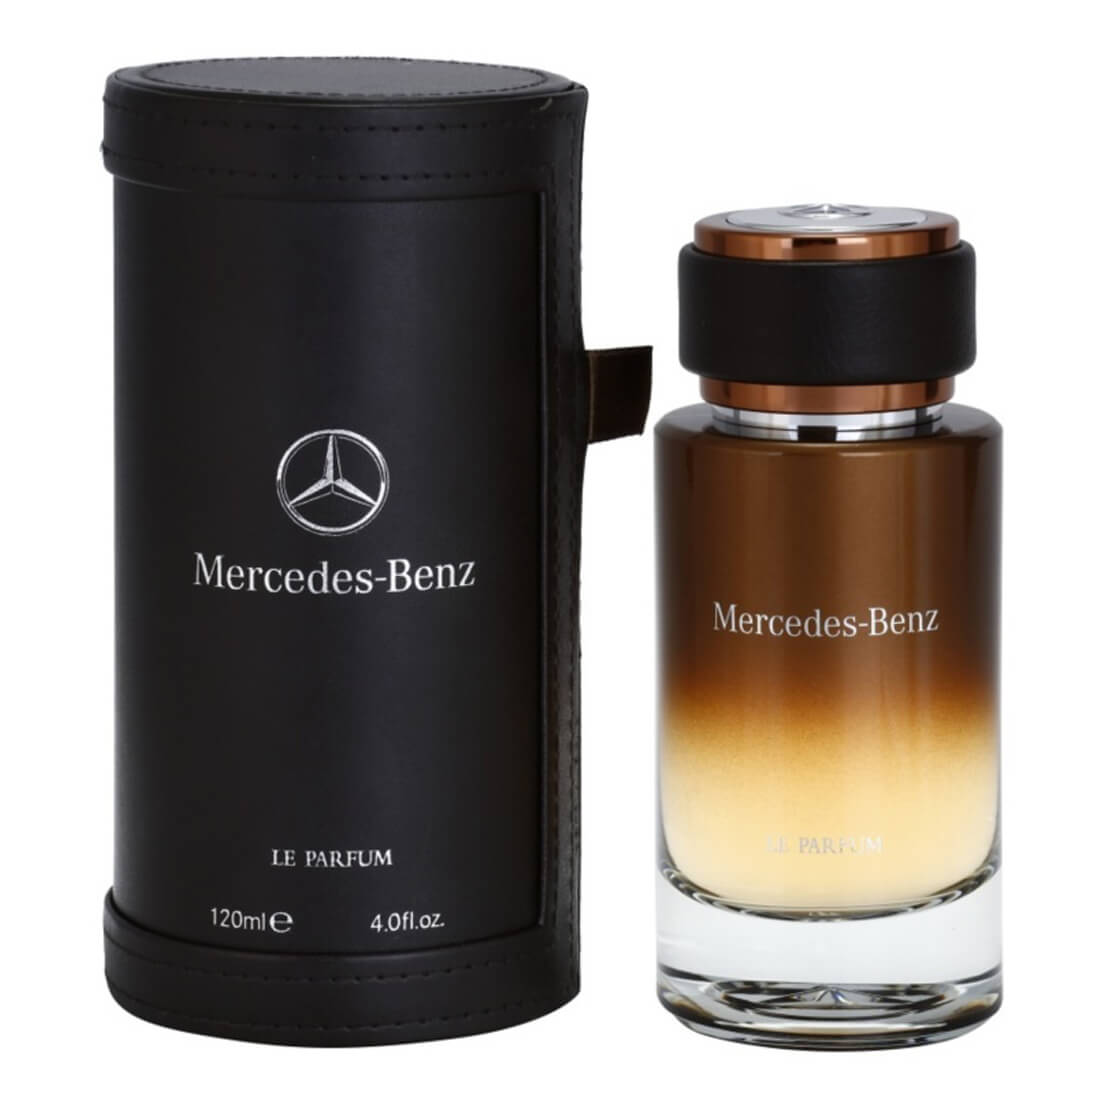 Mercedes Benz Le Parfum Eau De Perfume For Men - 120ml